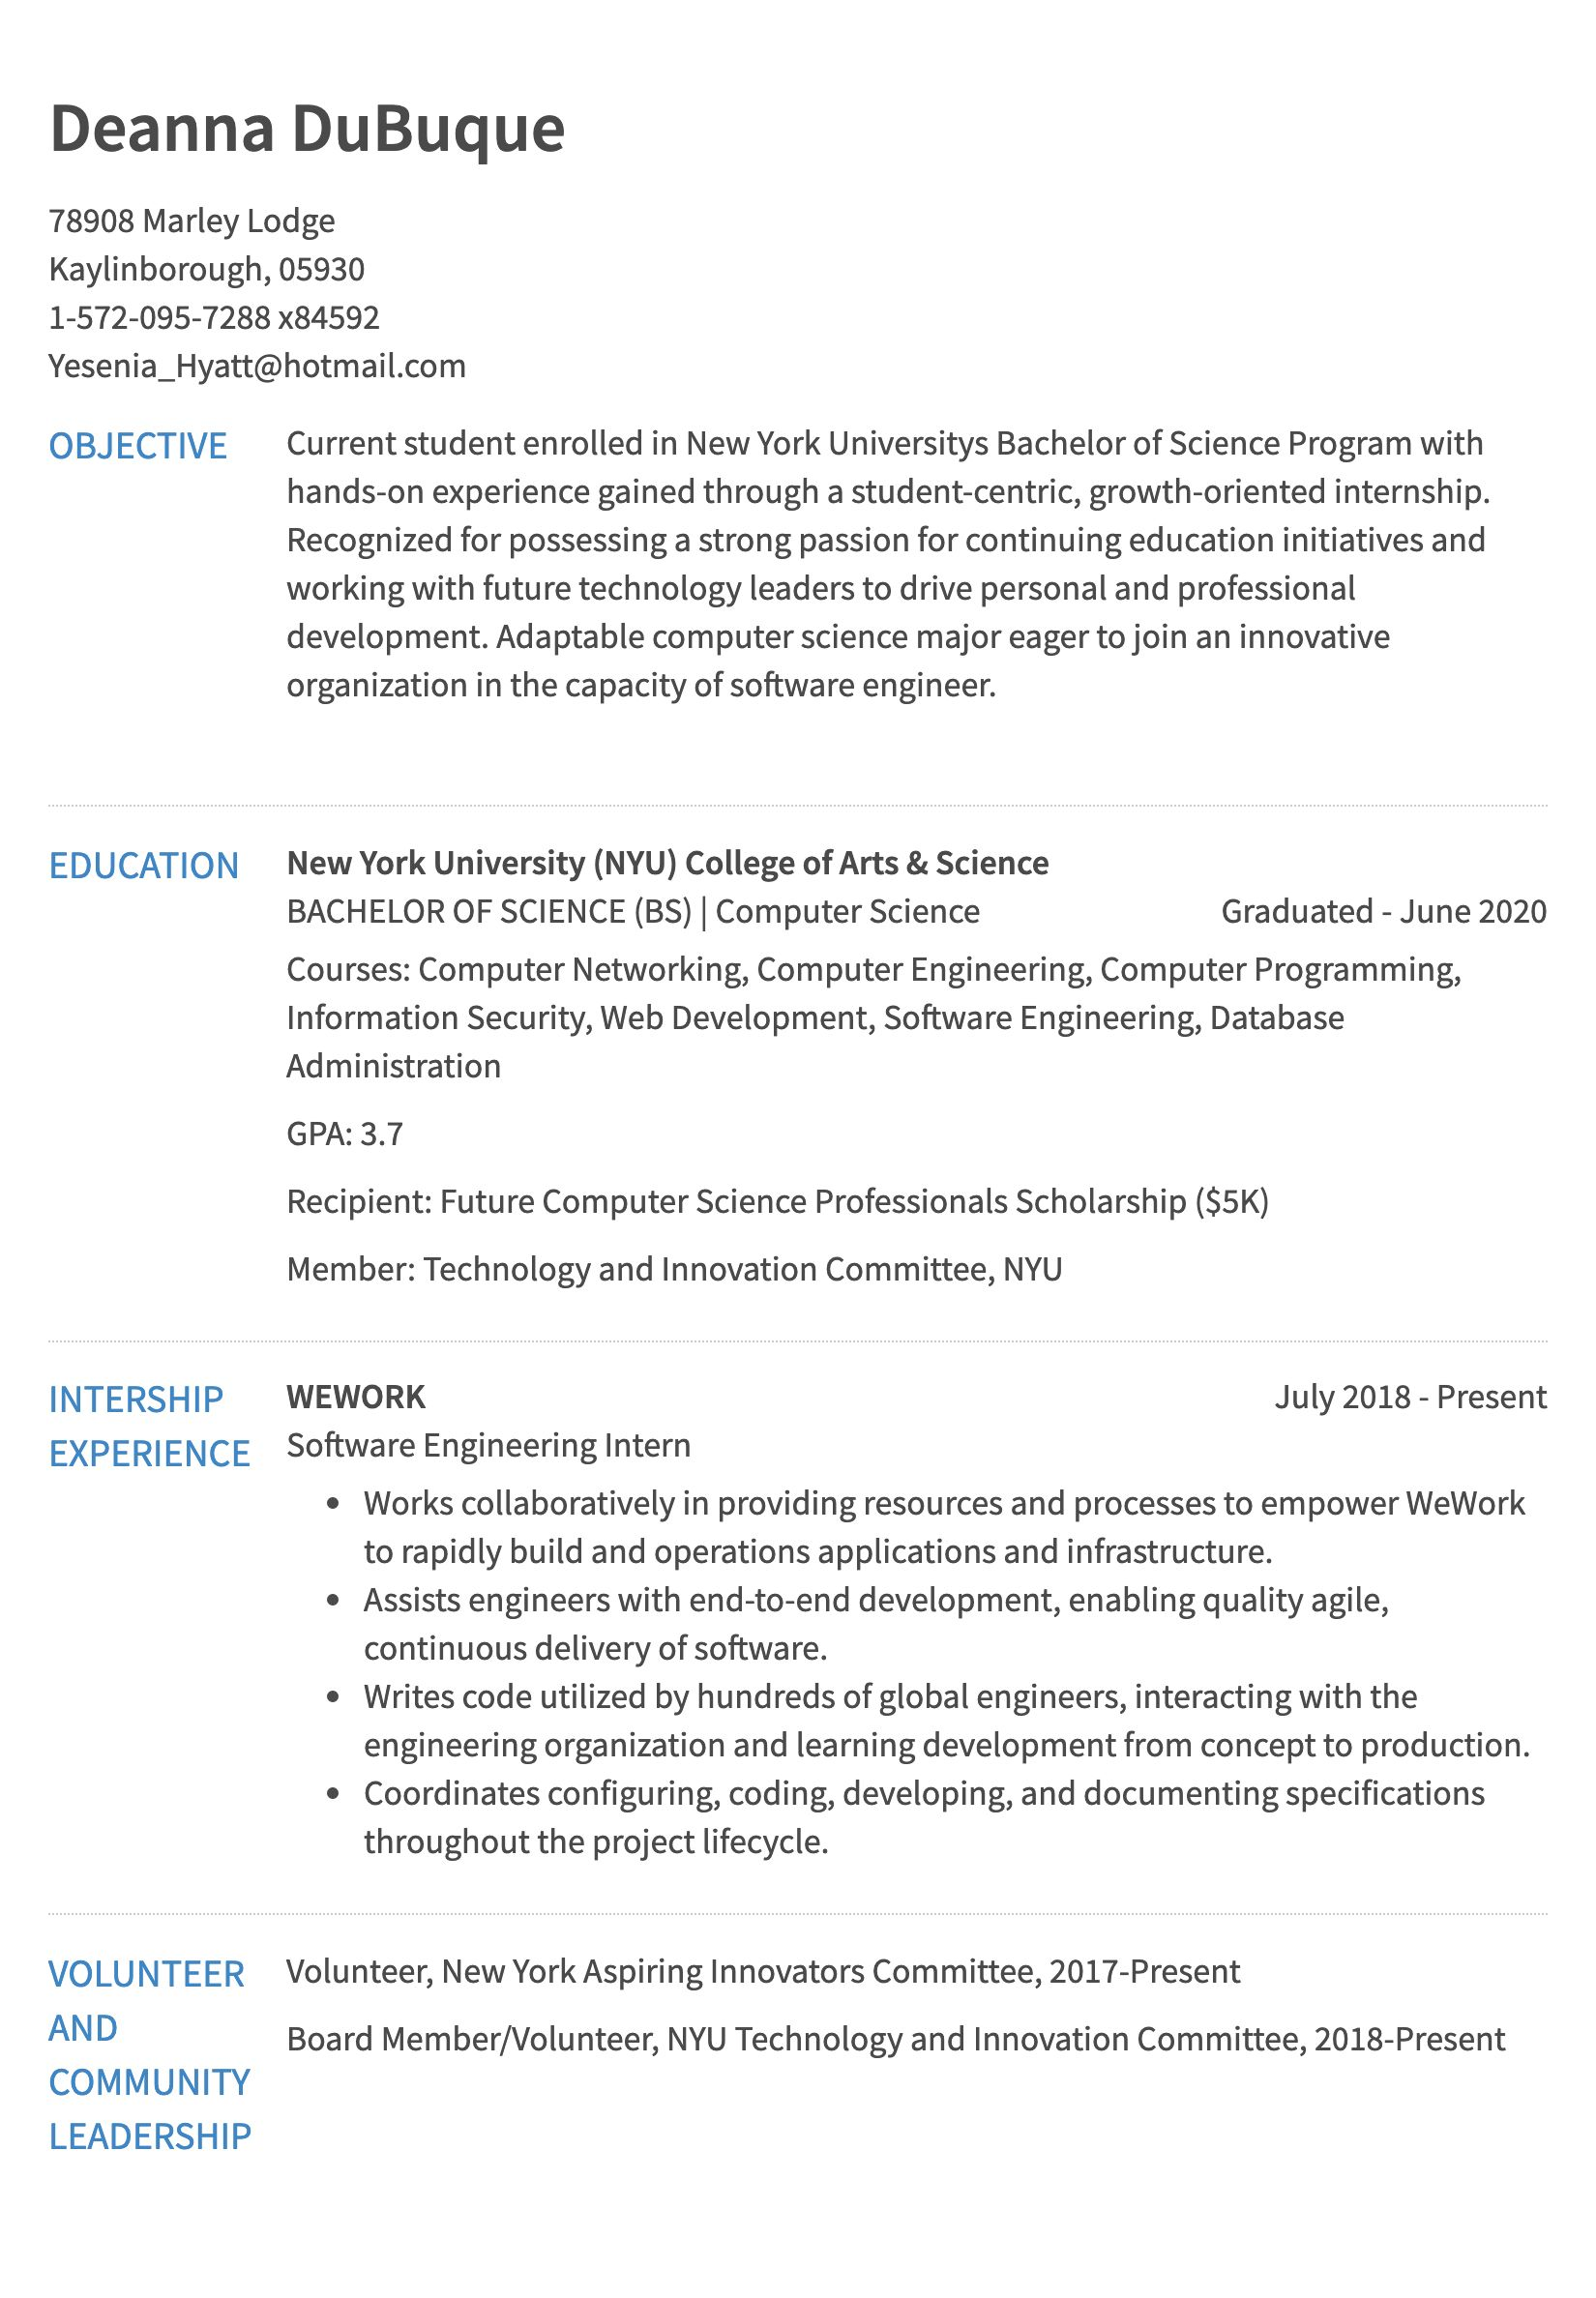 internship resume example computer science intern years of exp business analyst keywords Resume Computer Science Intern Resume